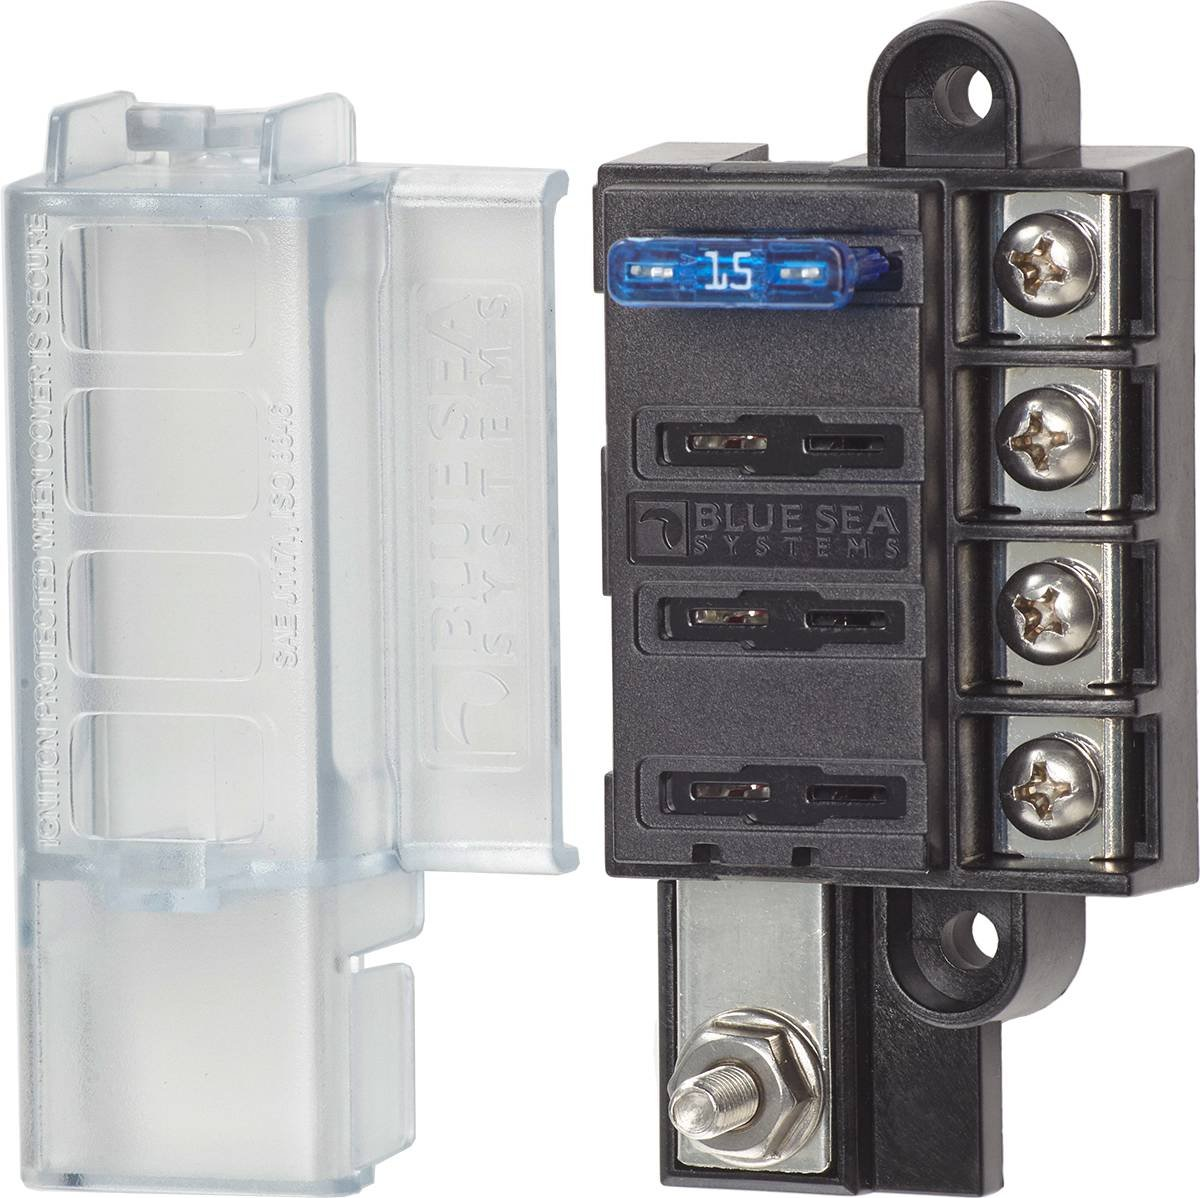 Blue Sea Systems St Blade 12 Circuit Fuse Block This Board Provides Three Switched Volt Fused Circuits In Marine Box Sports Outdoors